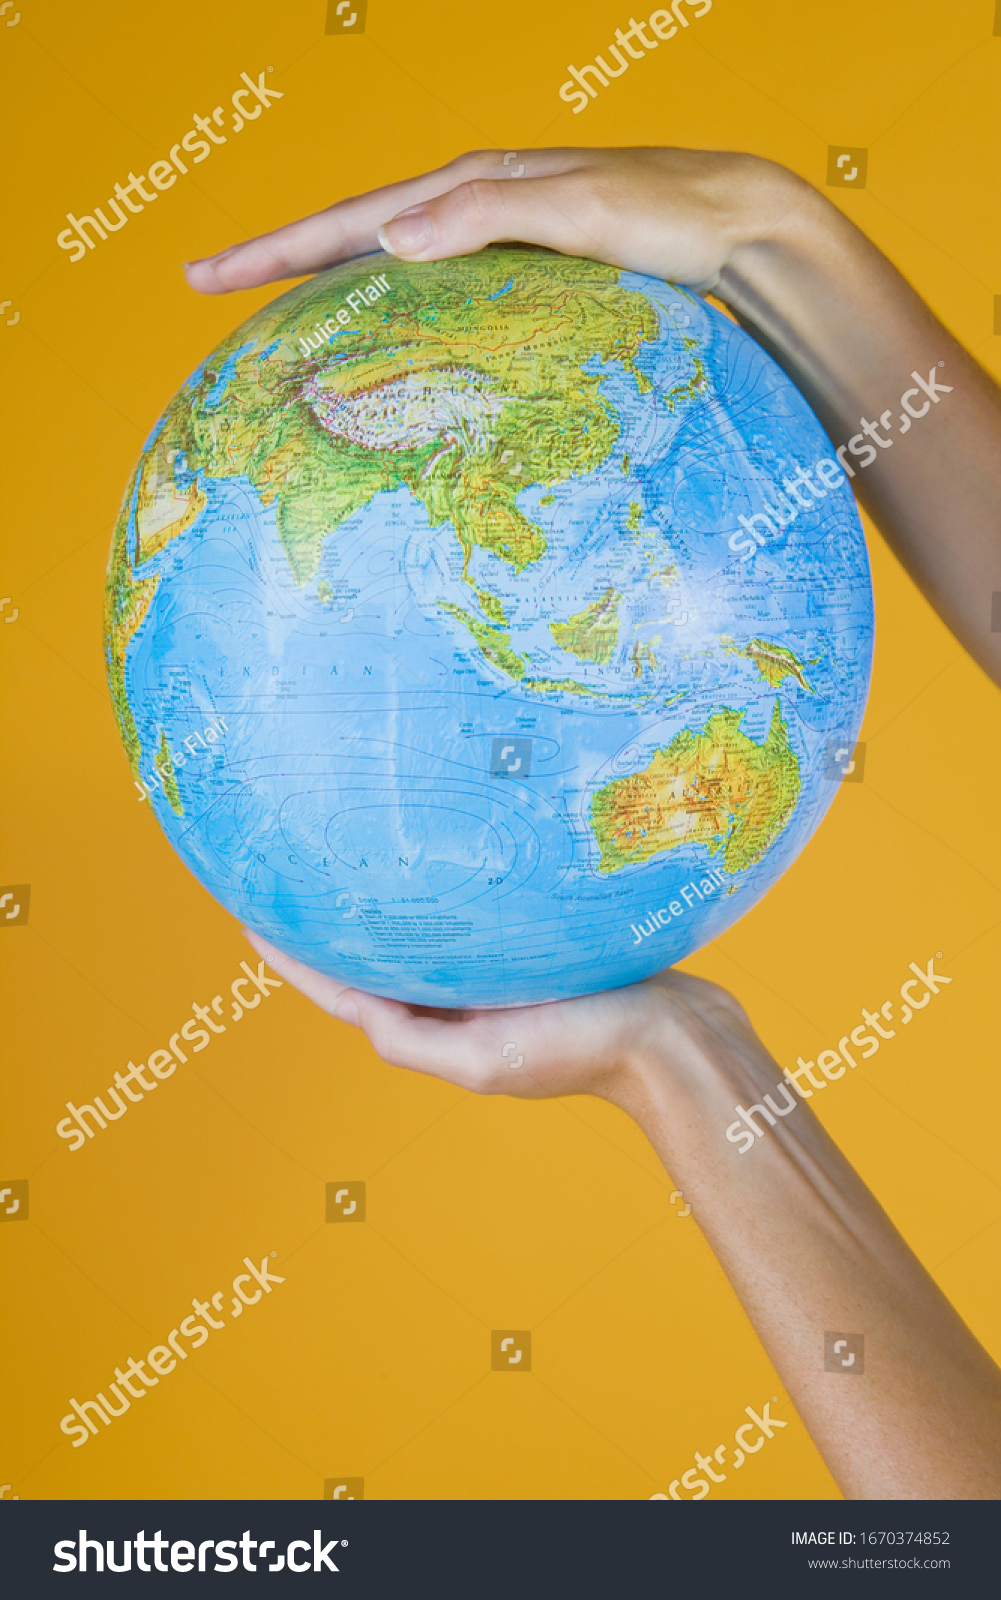 Studio concept with hands holding globe against yellow background #1670374852